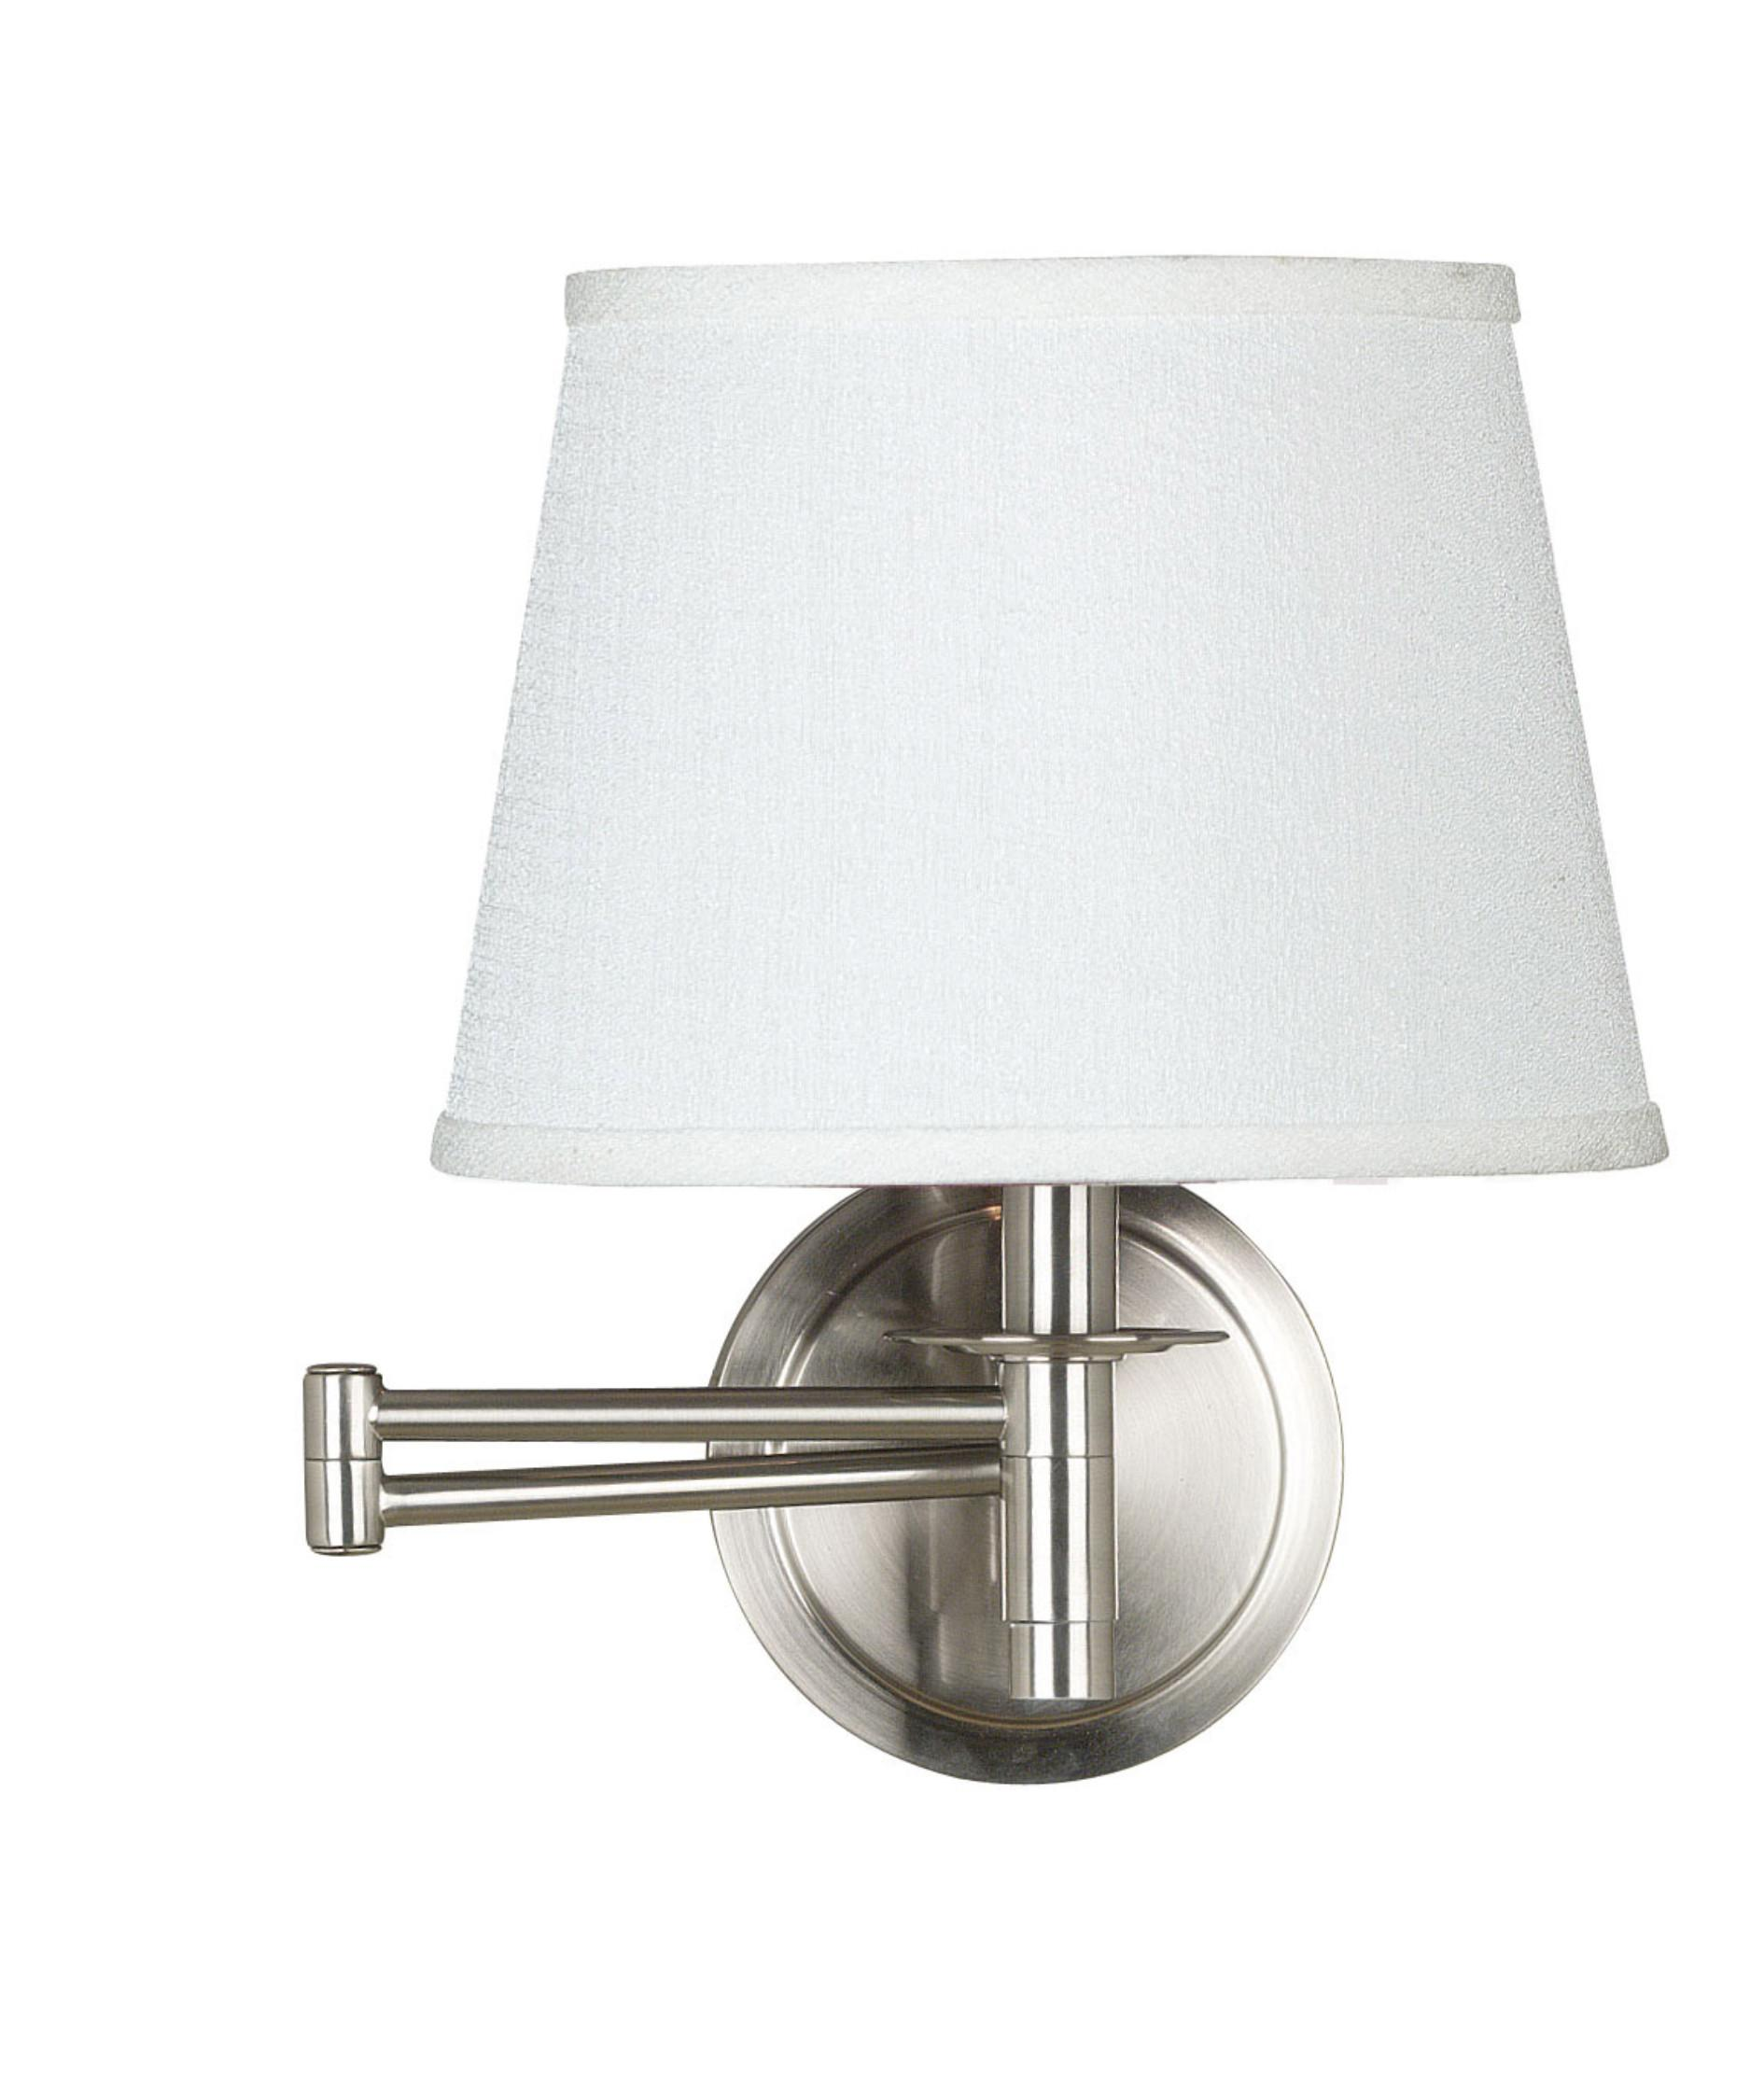 Lighting White Lamp Shade Swing Arm Wall Sconce